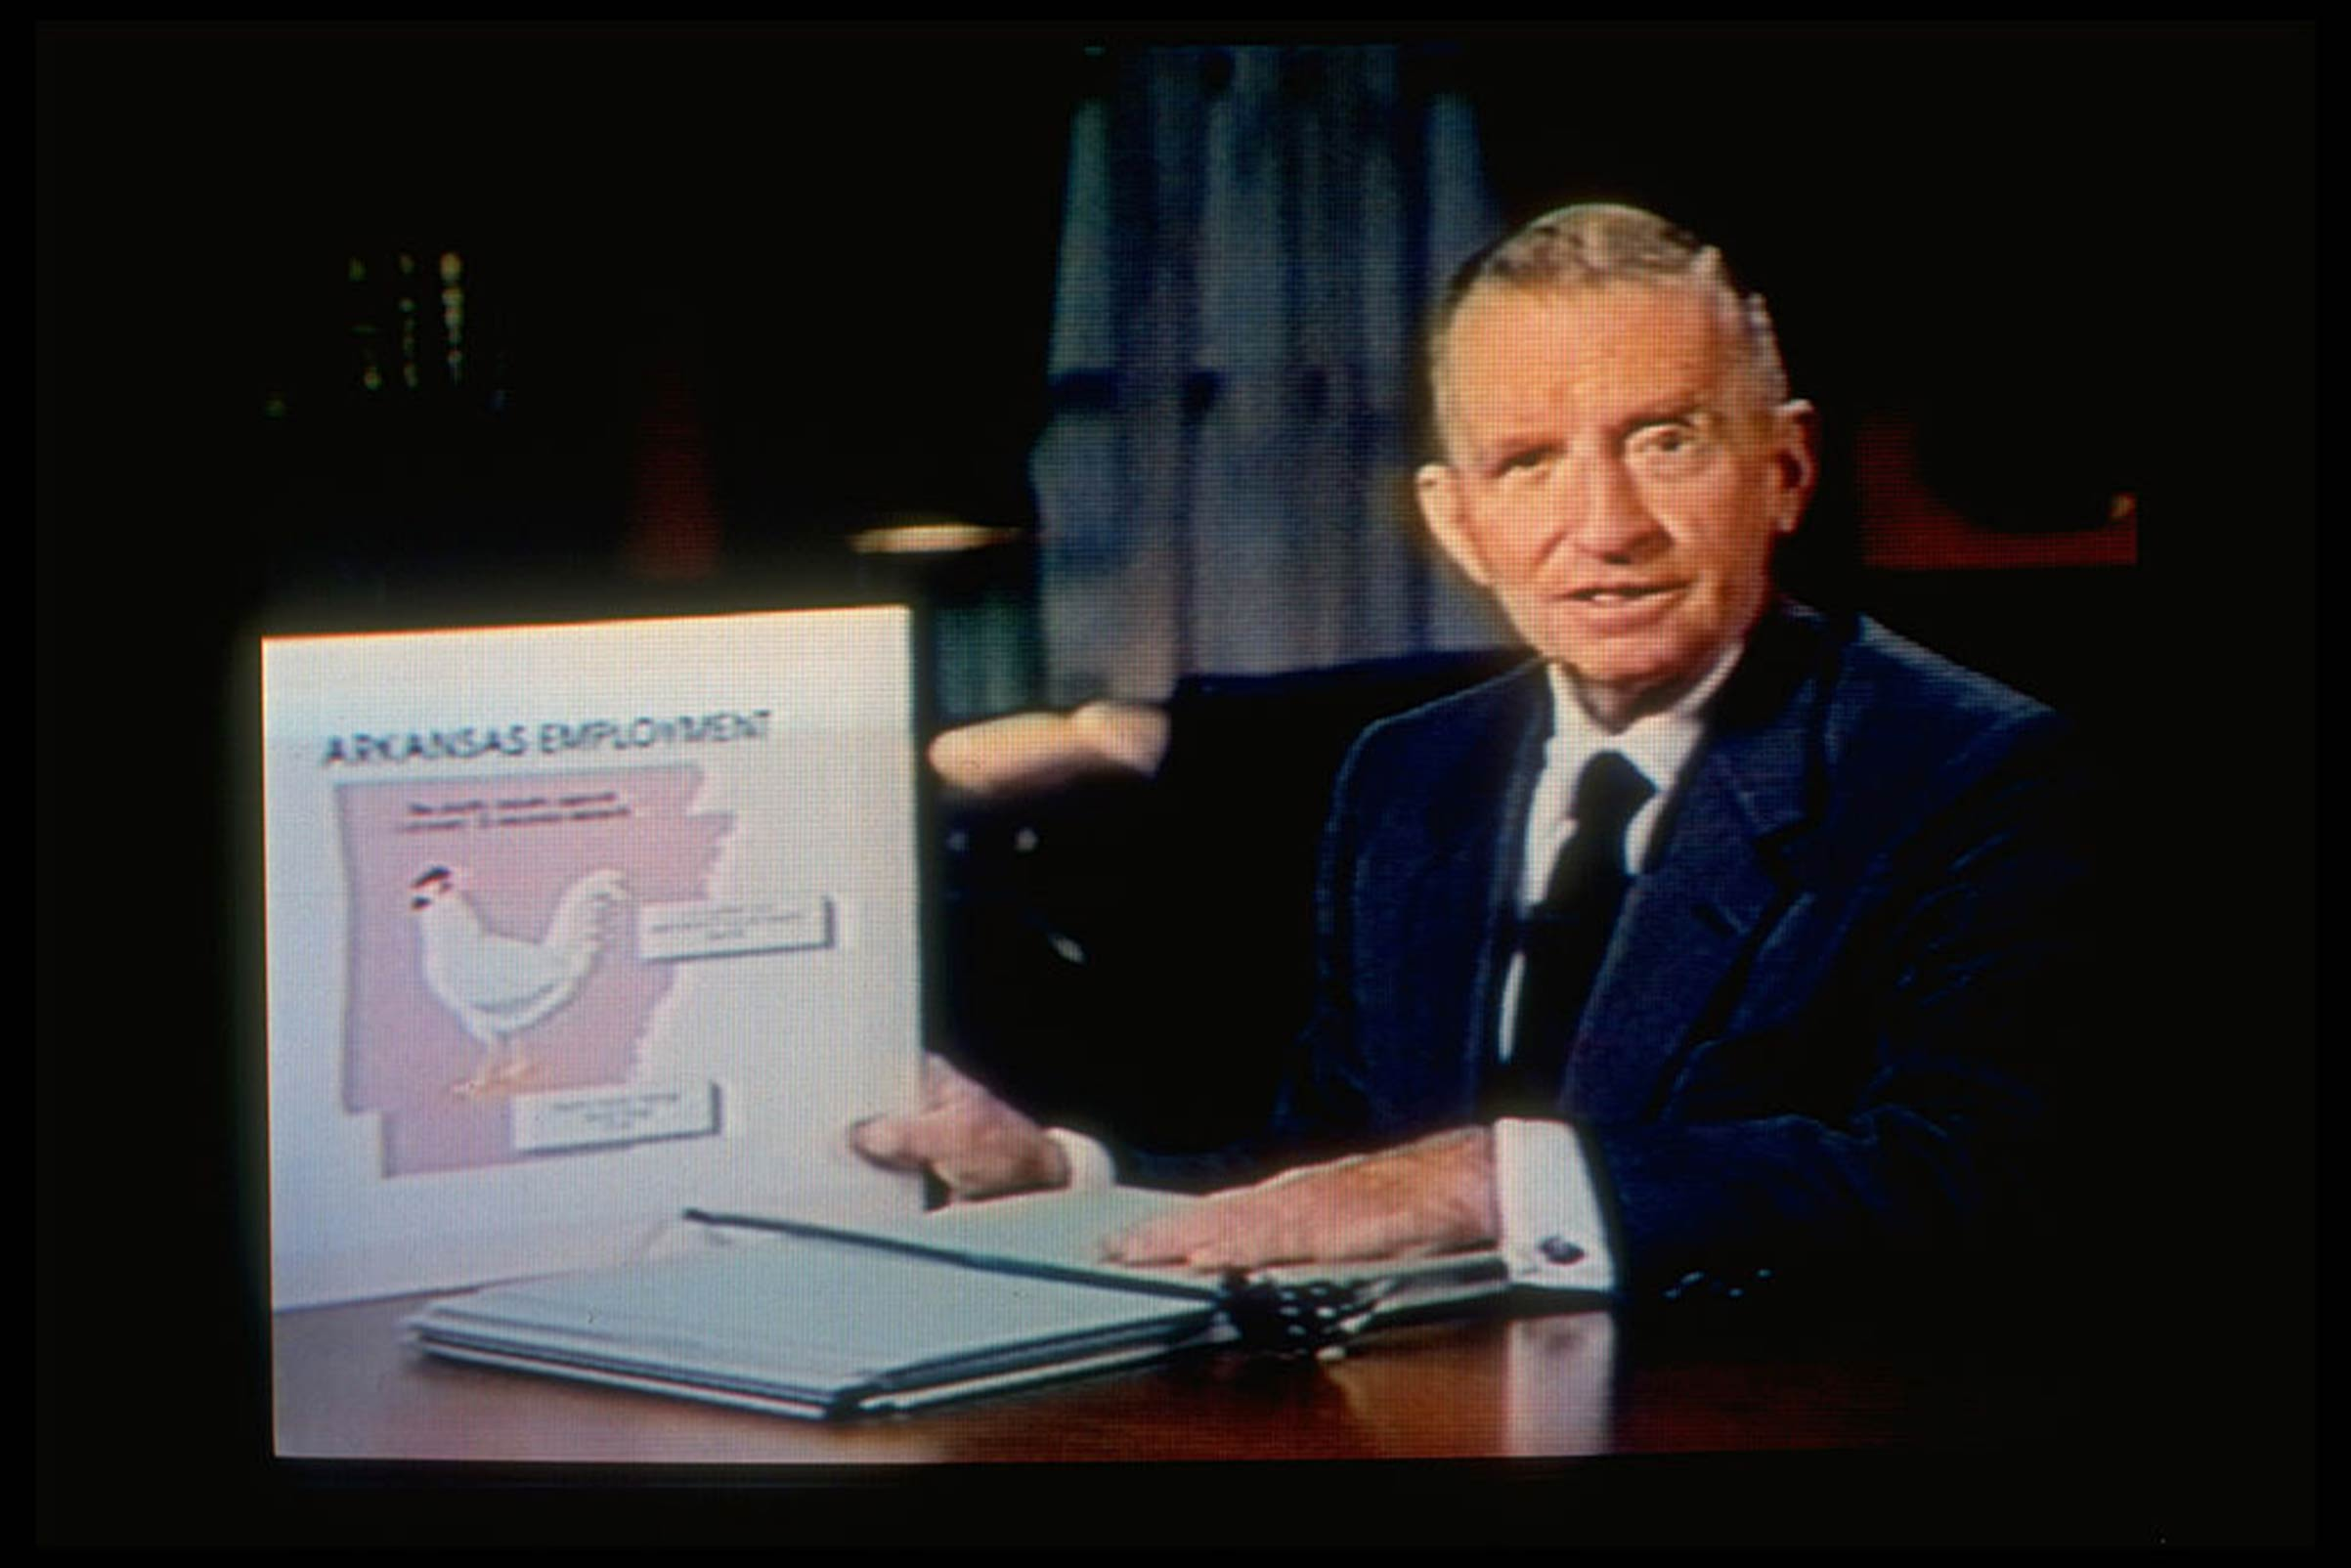 Texas magnate Ross Perot displaying an Arkansas state employment record chart to attack candidate Bill Clinton in a self-financed TV program that aired on Nov. 1, 1992.